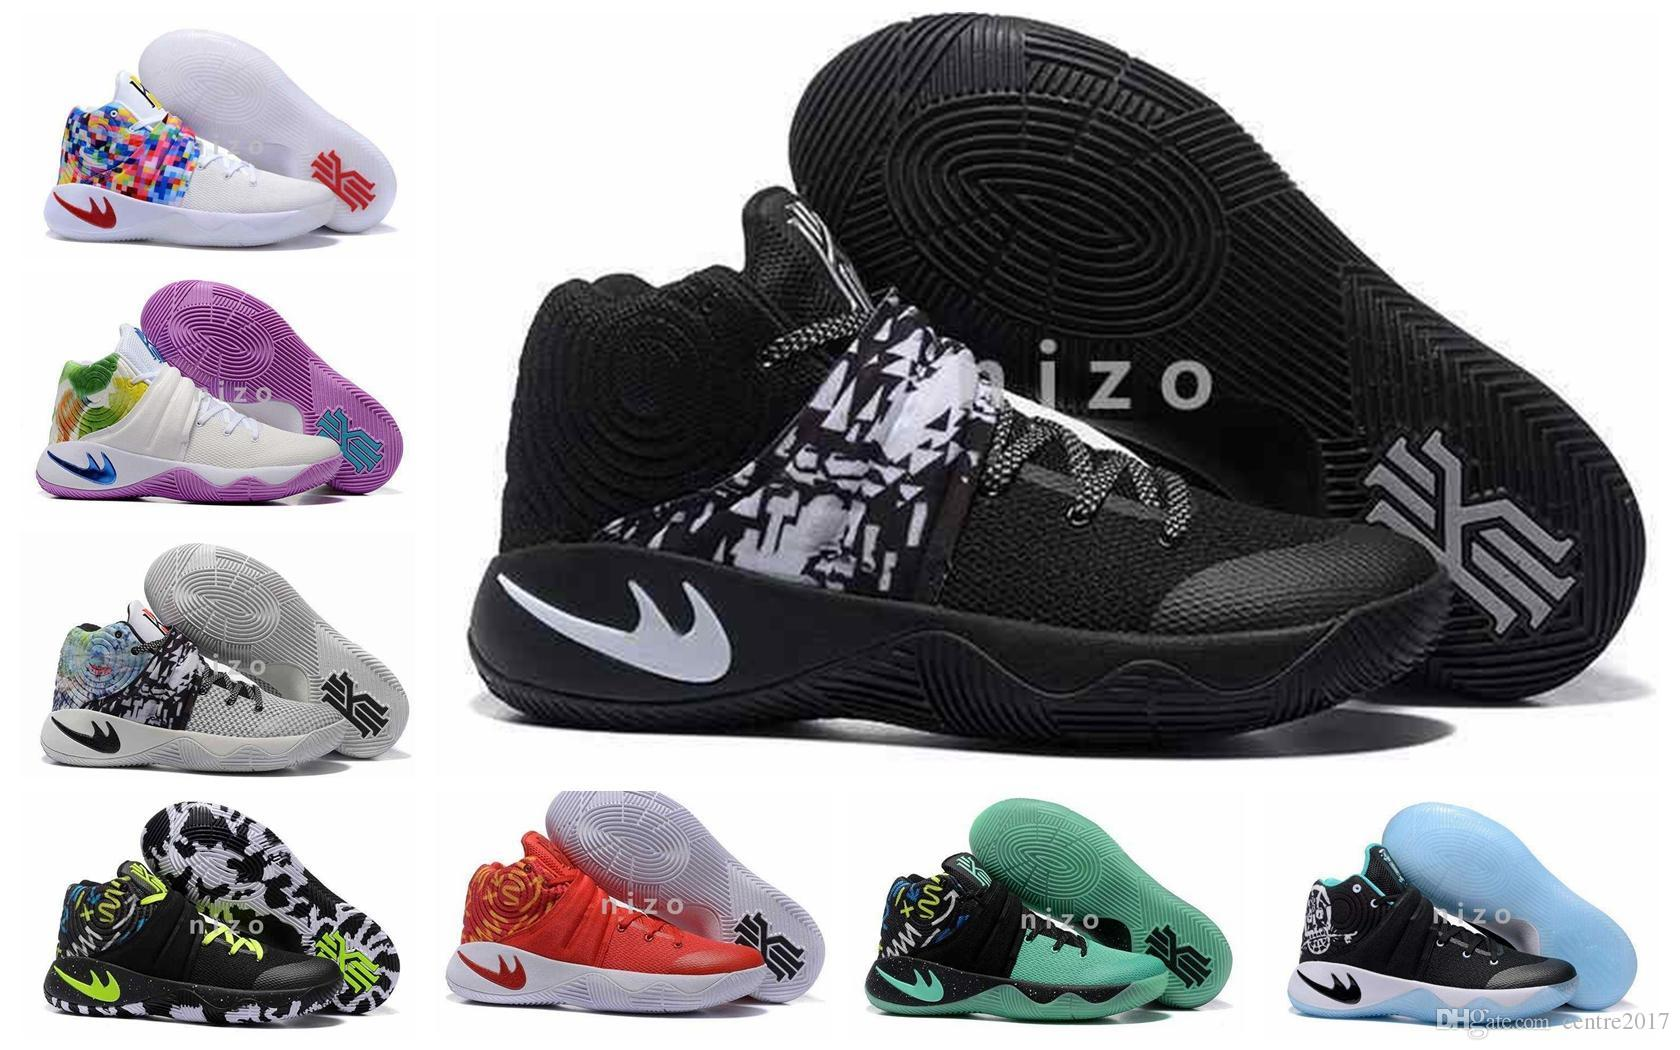 New Kyrie Irving Shoes Mens Basketball Shoes Kyrie 2 ...